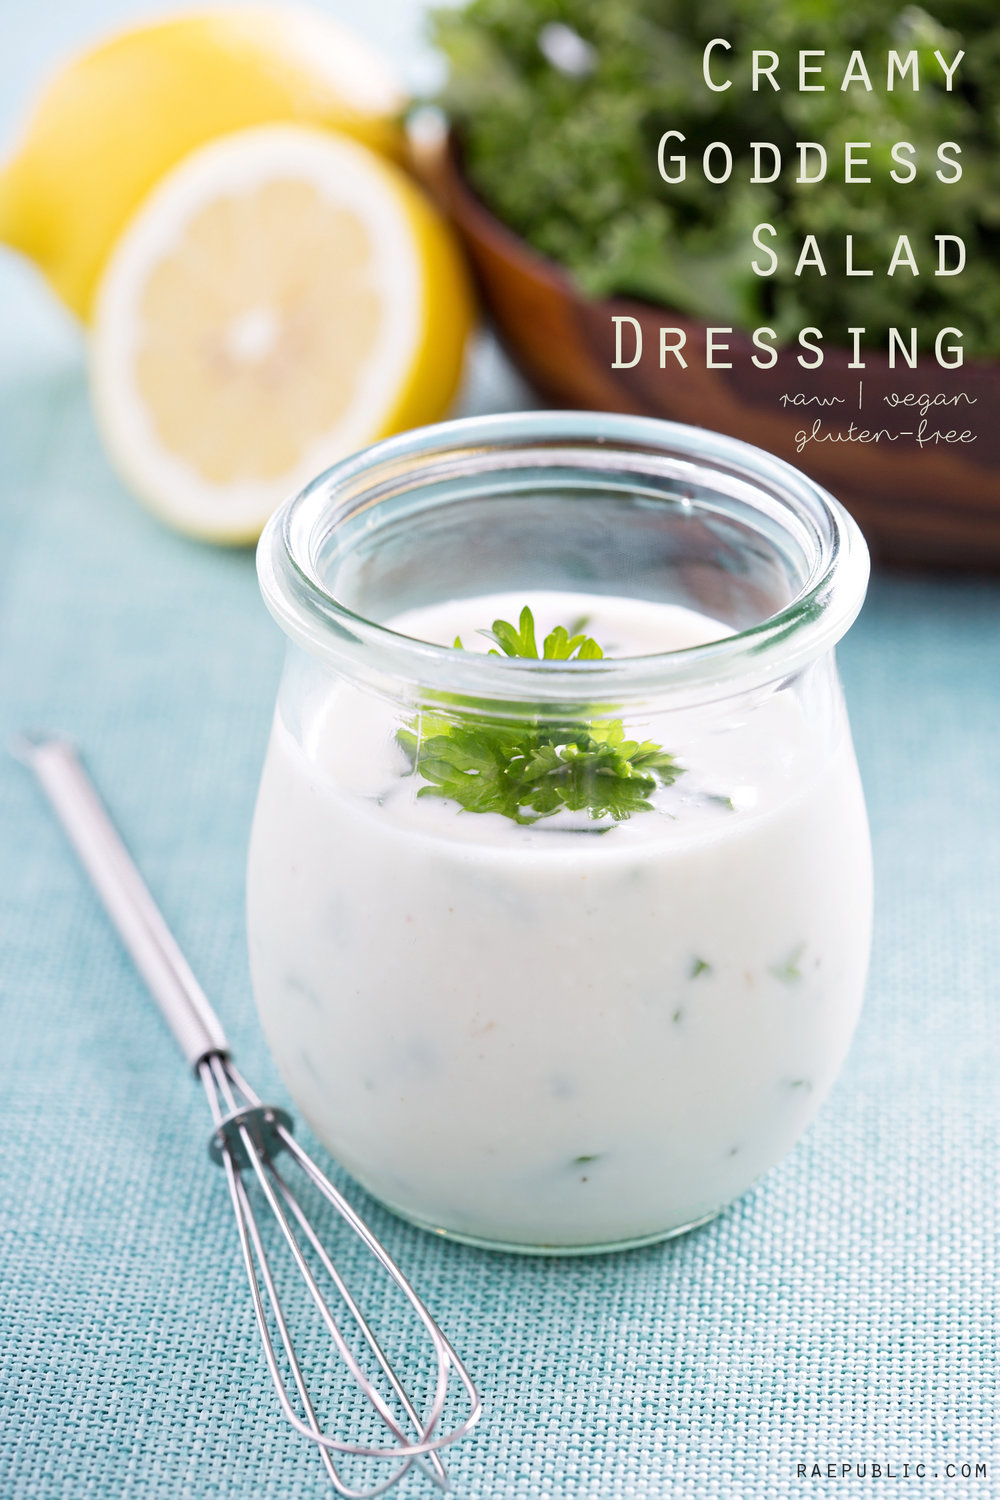 This creamy vegan salad dressing is so delicious and is perfect foR salads or dipping your favorite veggies!